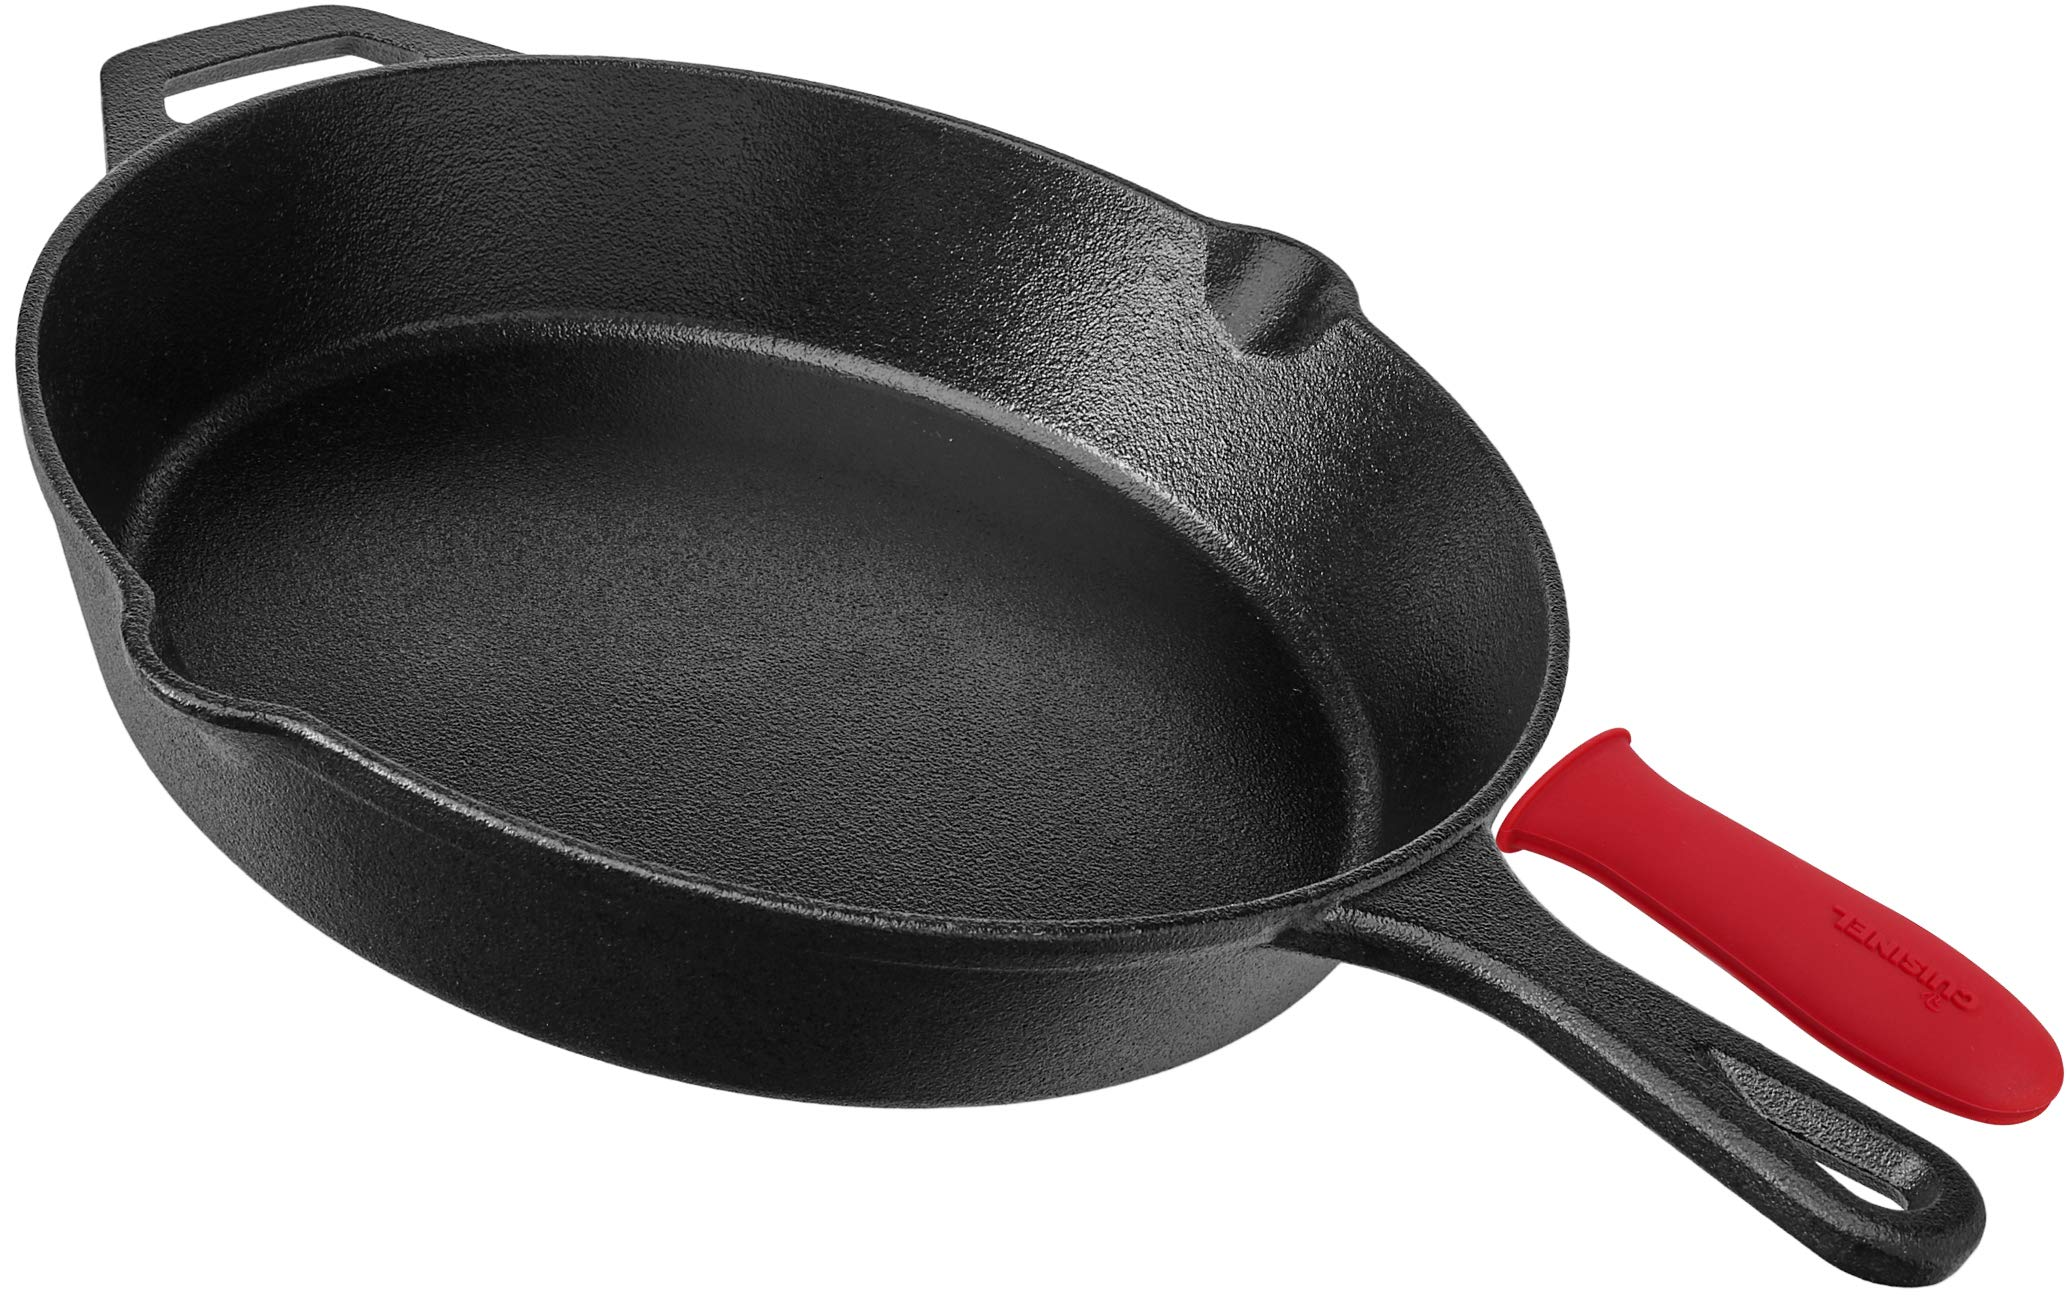 Pre-Seasoned Cast Iron Skillet (12-Inch) with Handle Cover Oven Safe Cookware - Heat-Resistant Holder - Indoor and Outdoor Use - Grill, Stovetop, Induction Safe by cuisinel